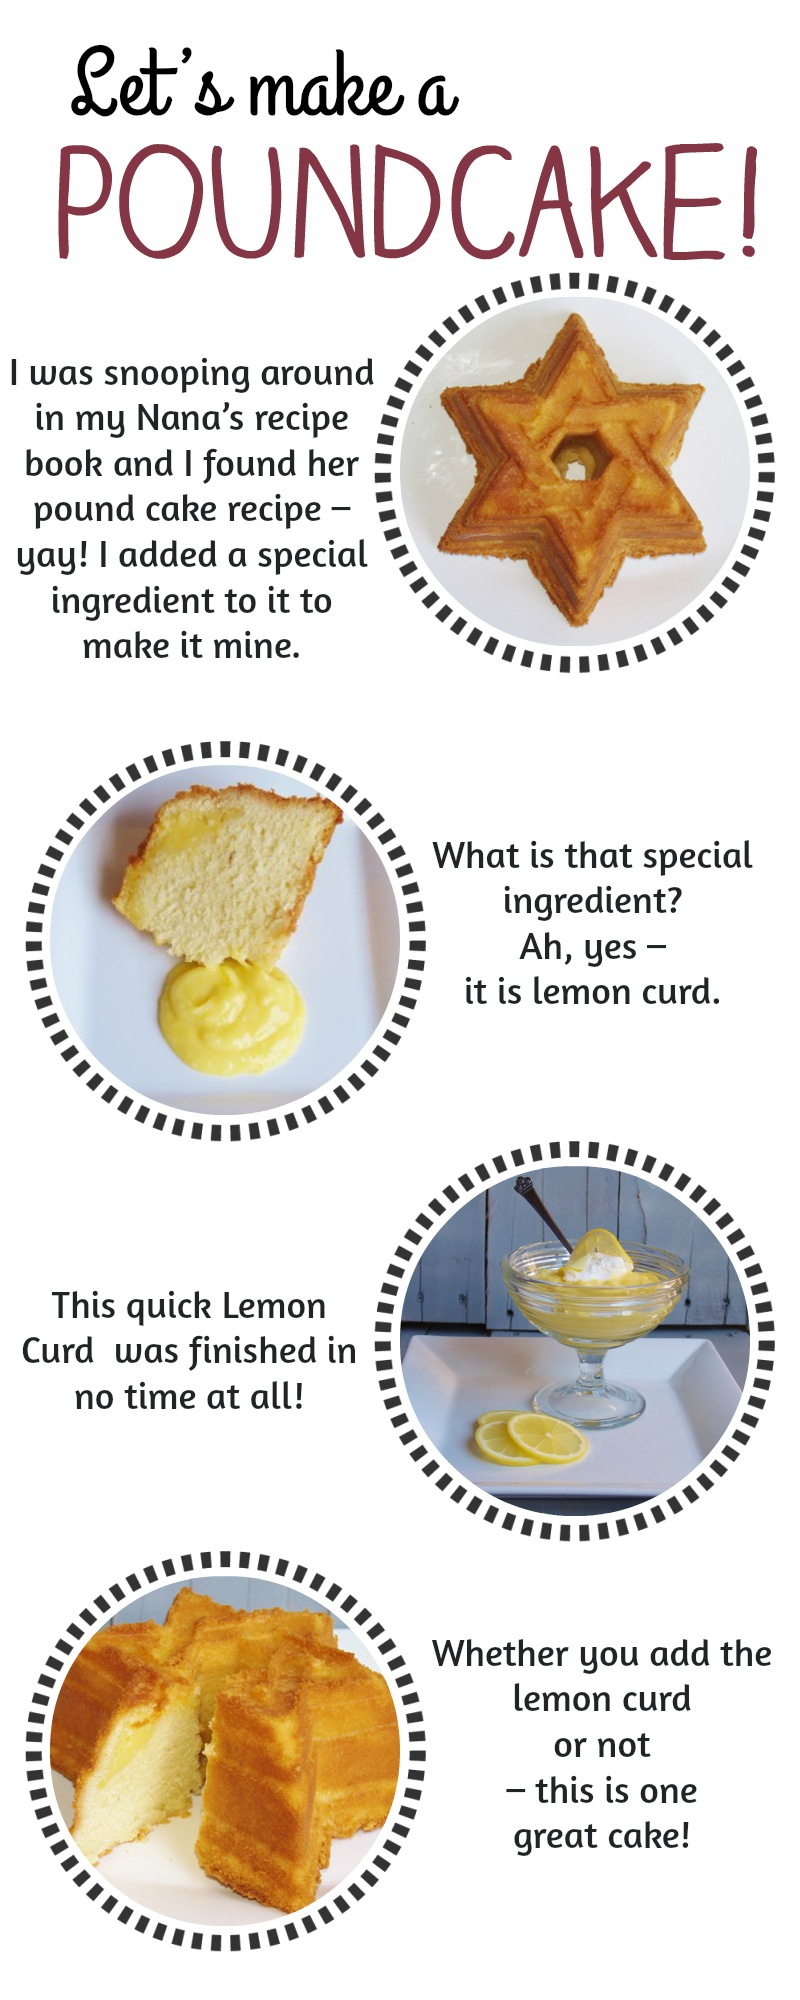 Nana's Pound Cake with Lemon Curd- Recipe for southern pound cake with vanilla bean and lemon curd